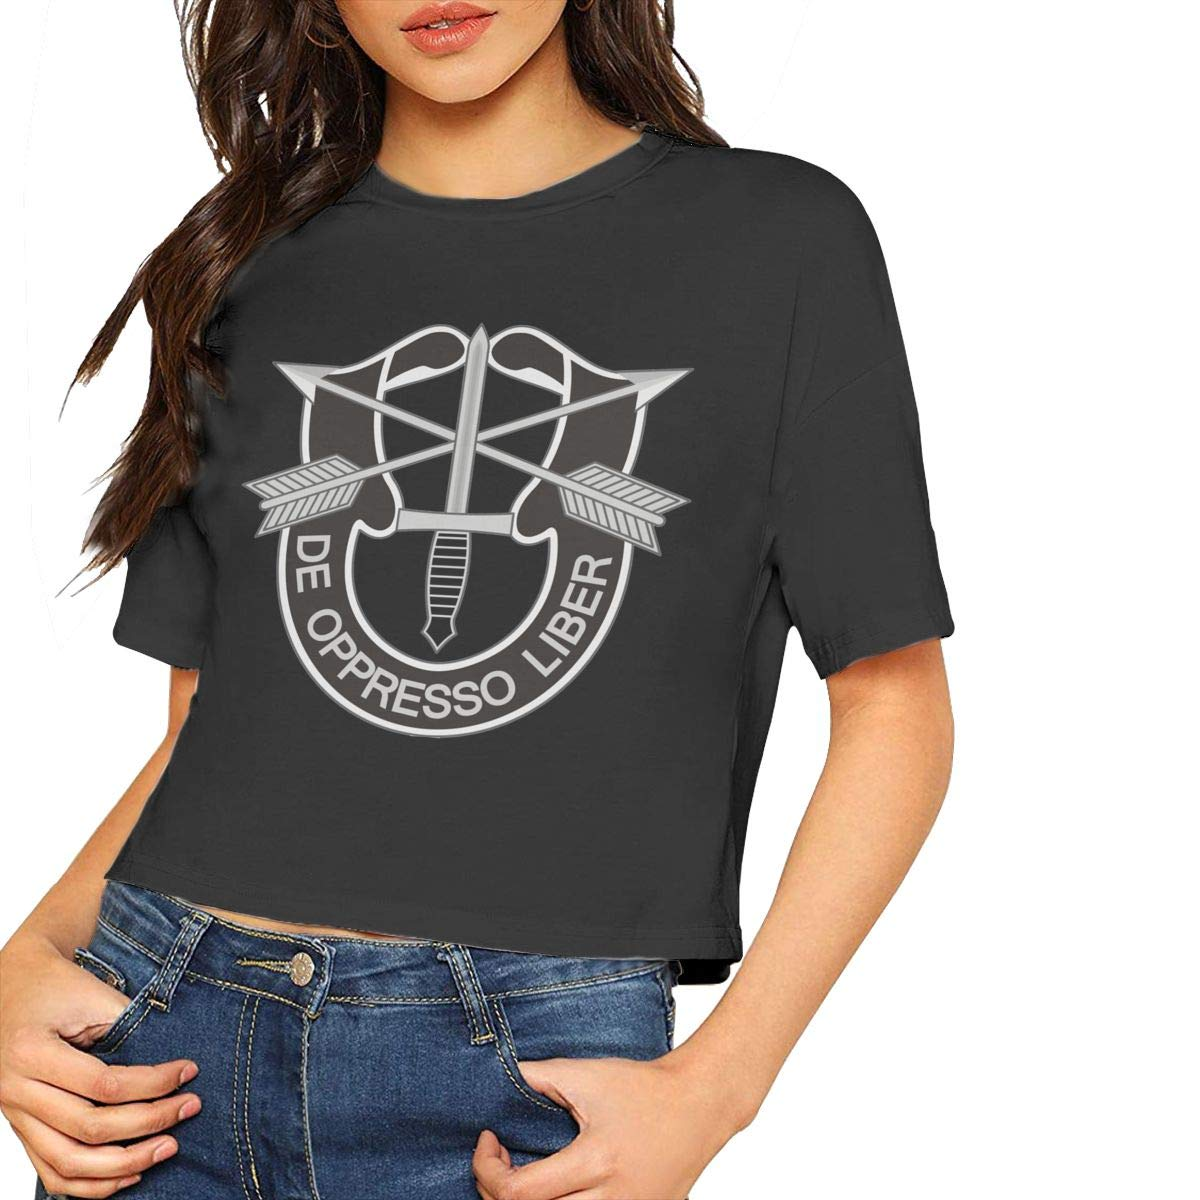 VANMASS Womens Crop Tops Army Special Forces Logo Short Sleeve Shirts